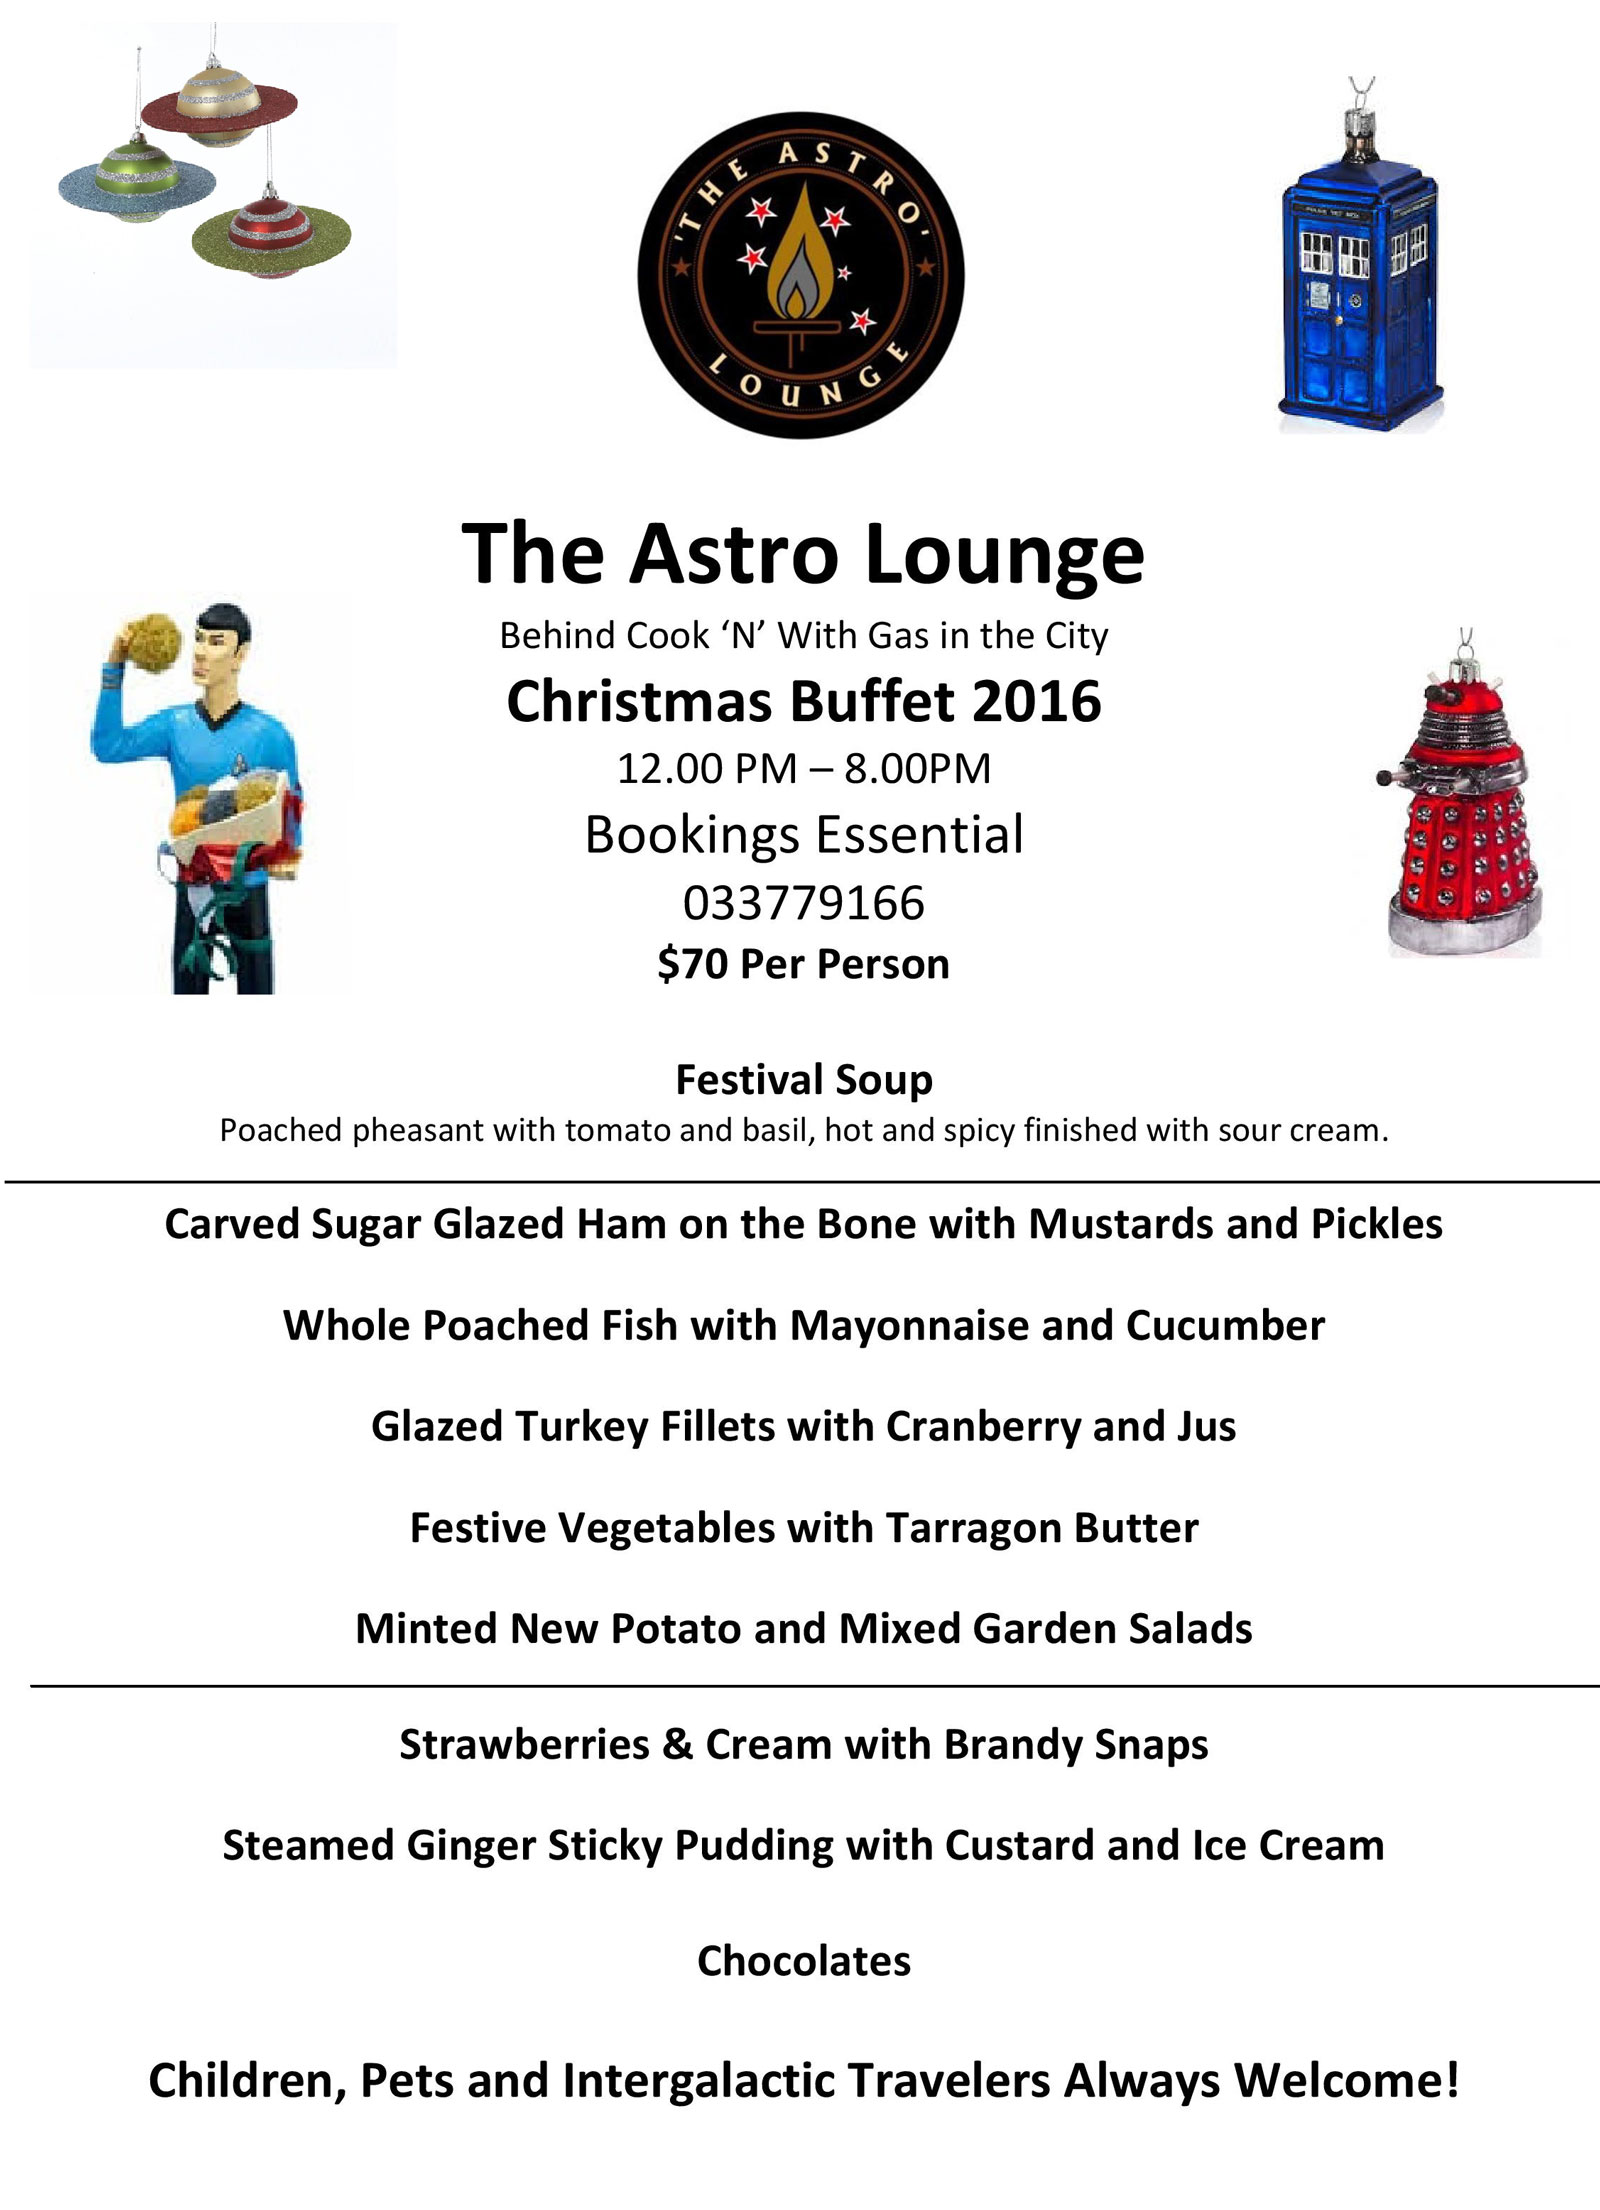 Astro-Lounge-Xmas-Buffet-2016-Edited